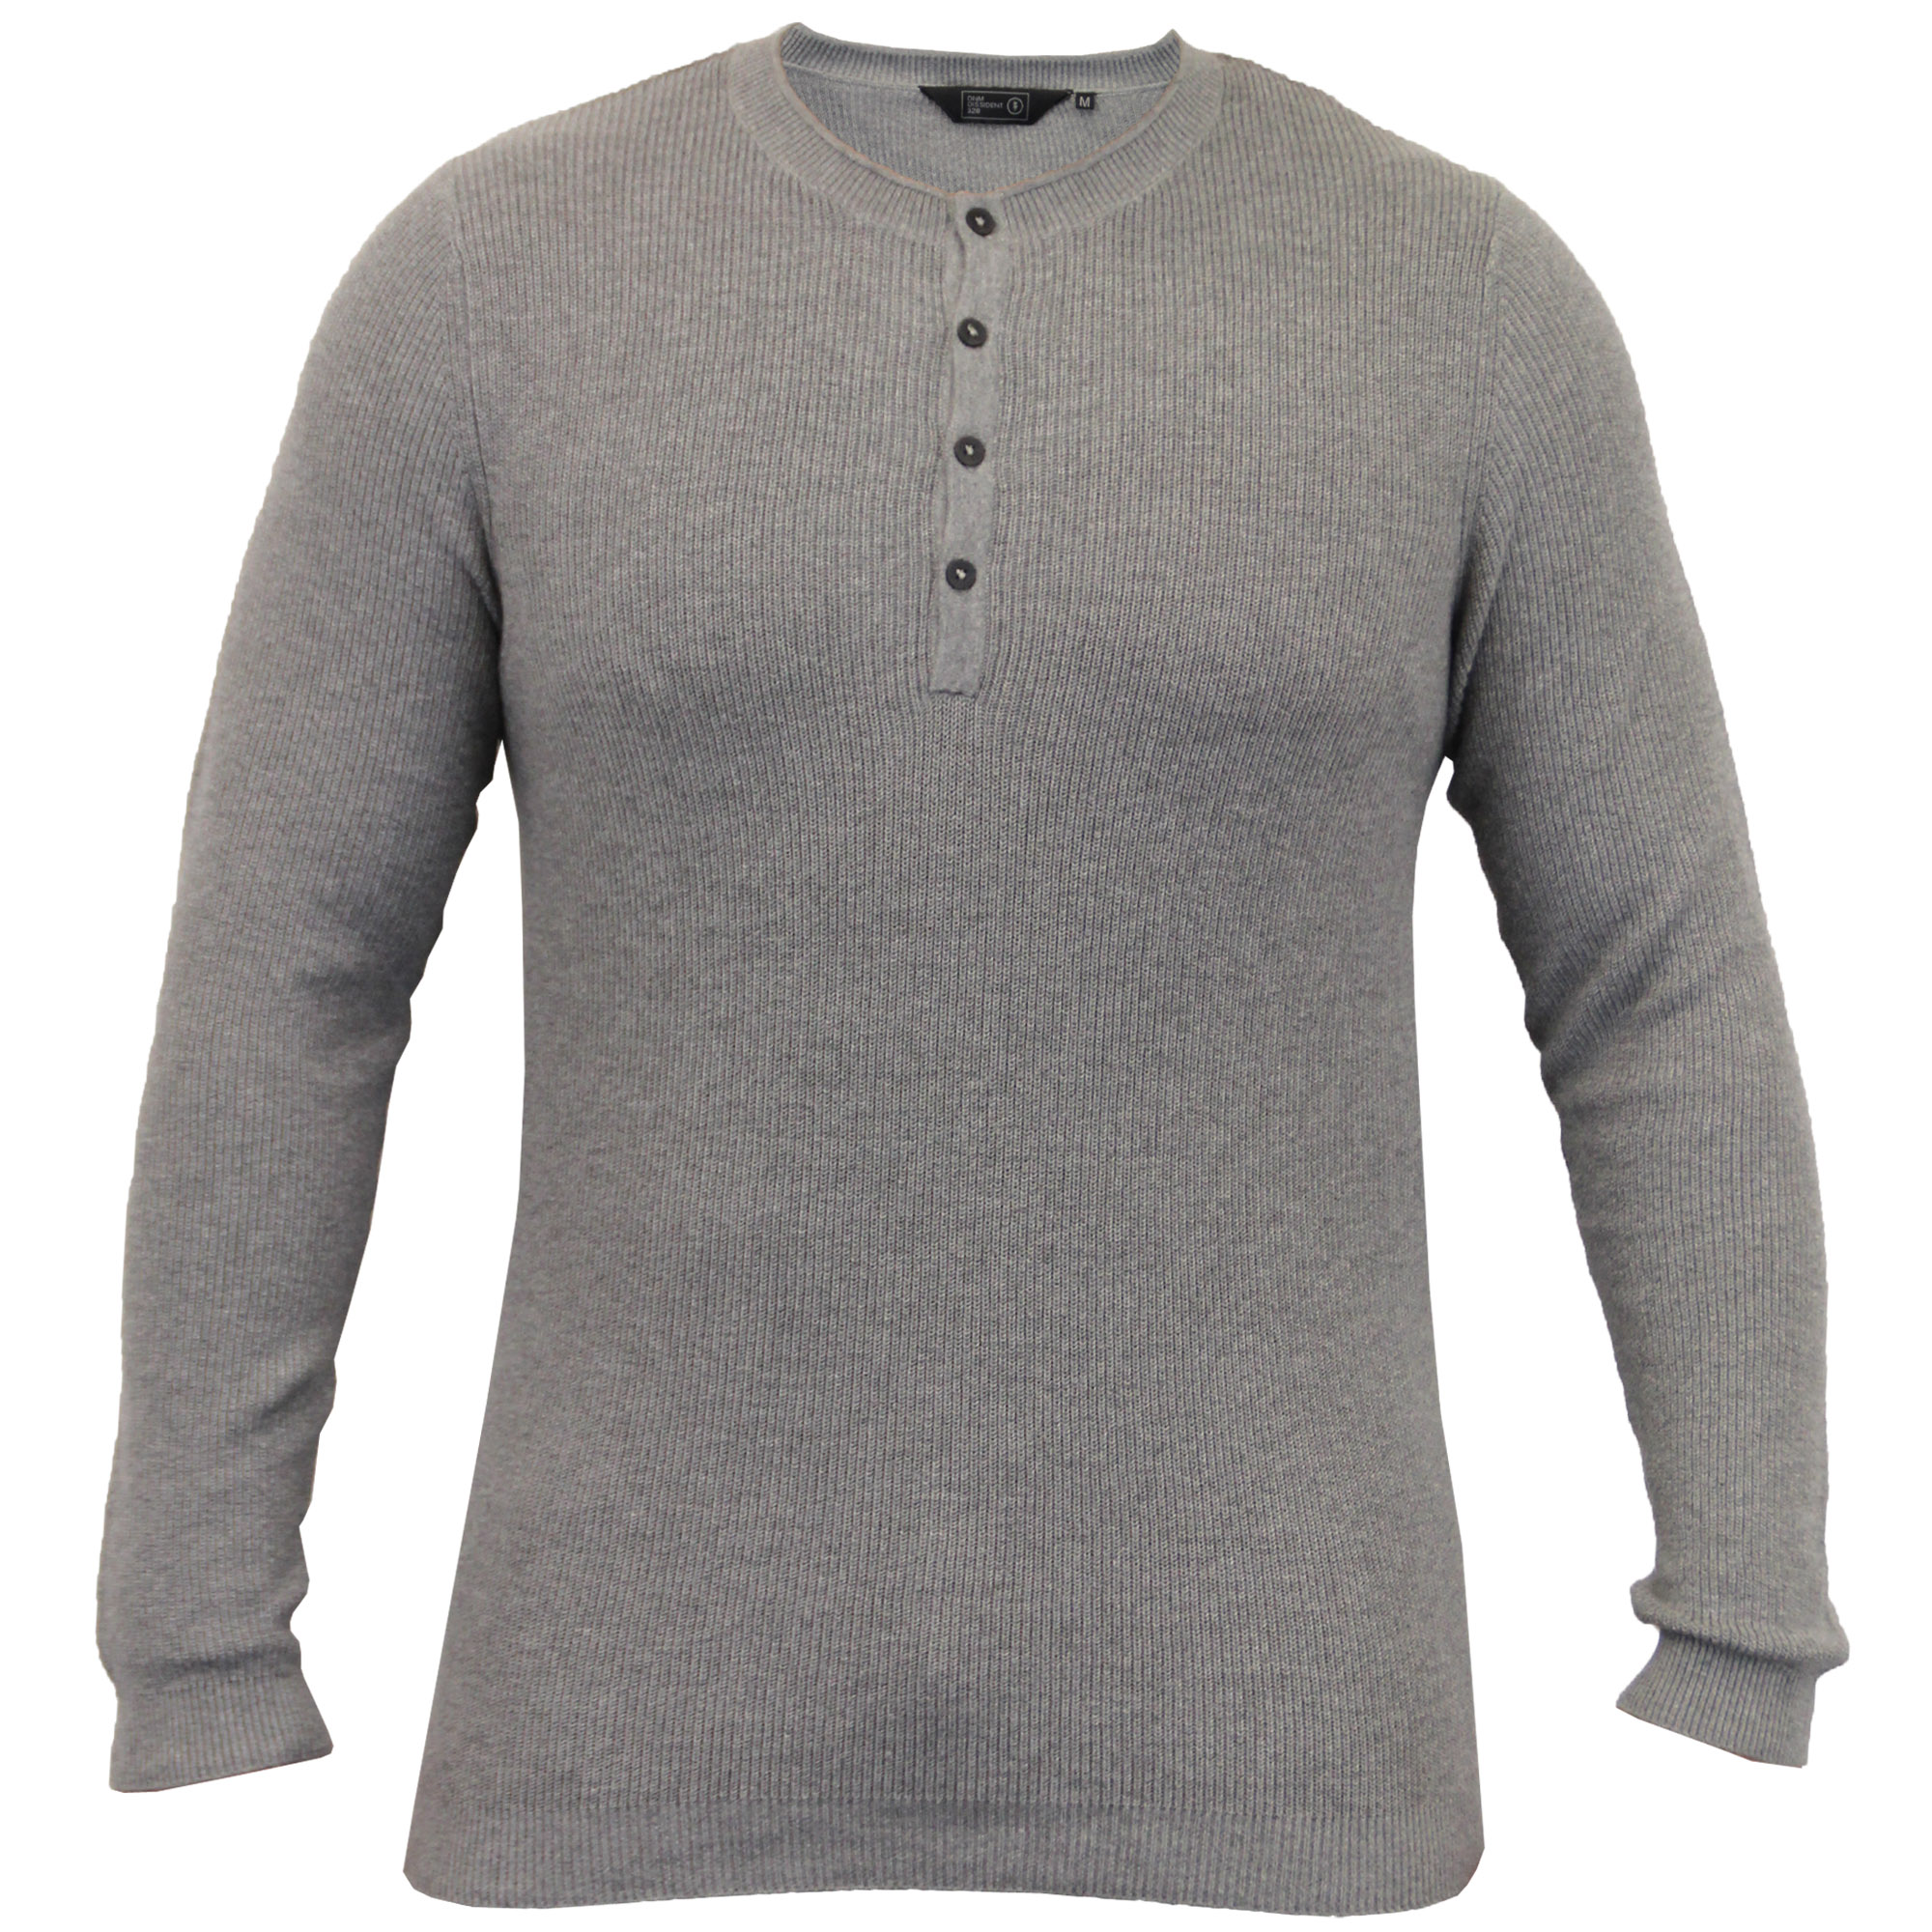 Mens-Grandad-Jumpers-Dissident-Knitted-Ribbed-Top-Lightweight-Casual-Winter-New thumbnail 3